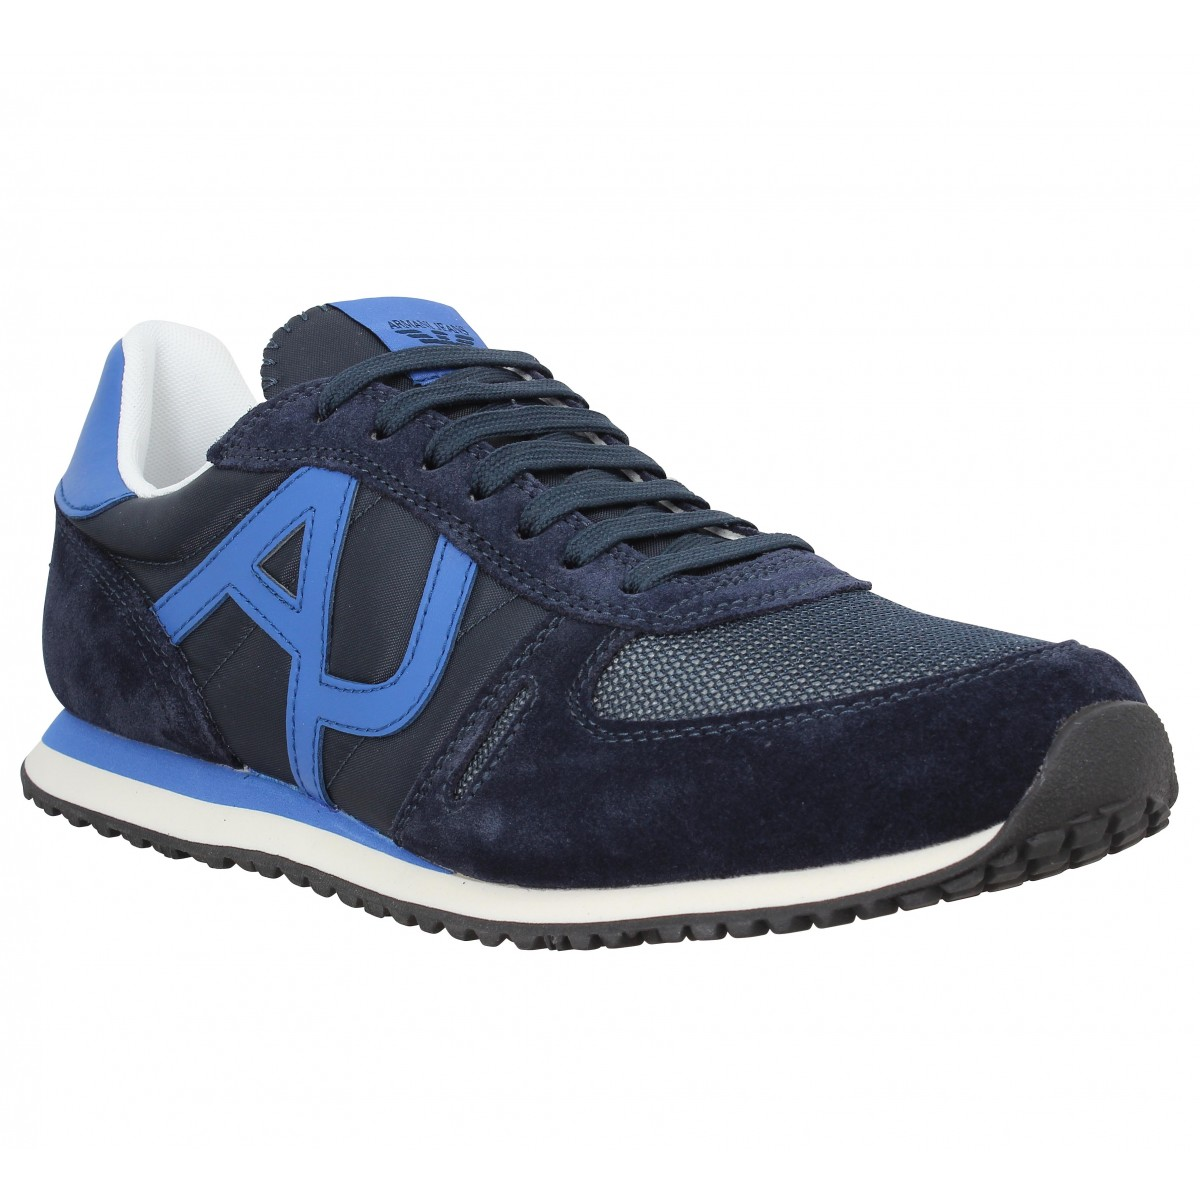 da8ee2b3f5a25f Chaussures Armani jeans 9350 bleu homme | Fanny chaussures